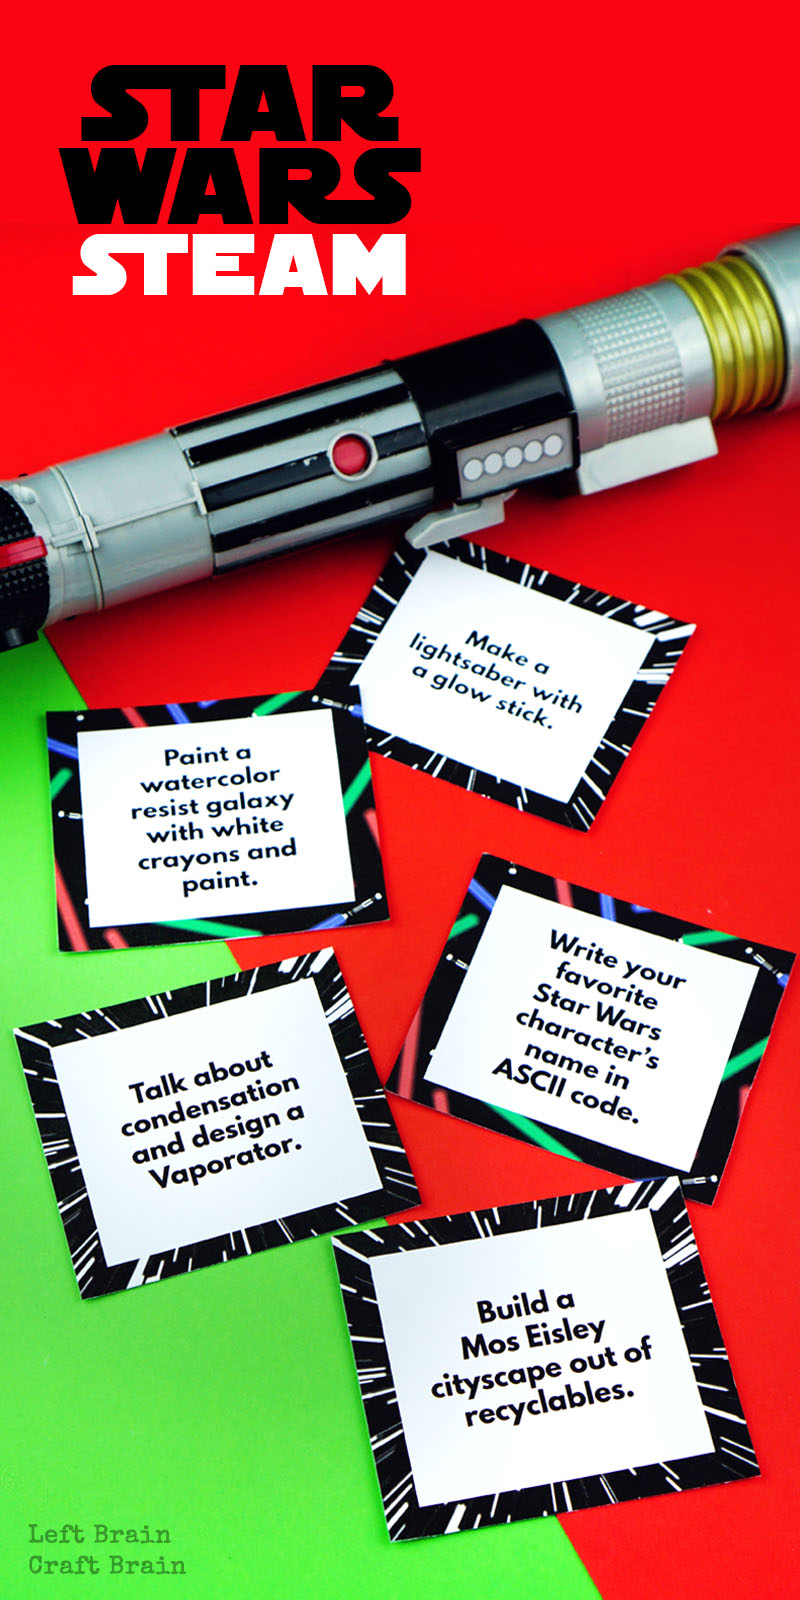 Star Wars fans, test your knowledge of the movies while having fun with science, tech, engineering, art, & math with these Star Wars STEAM Challenge Cards.